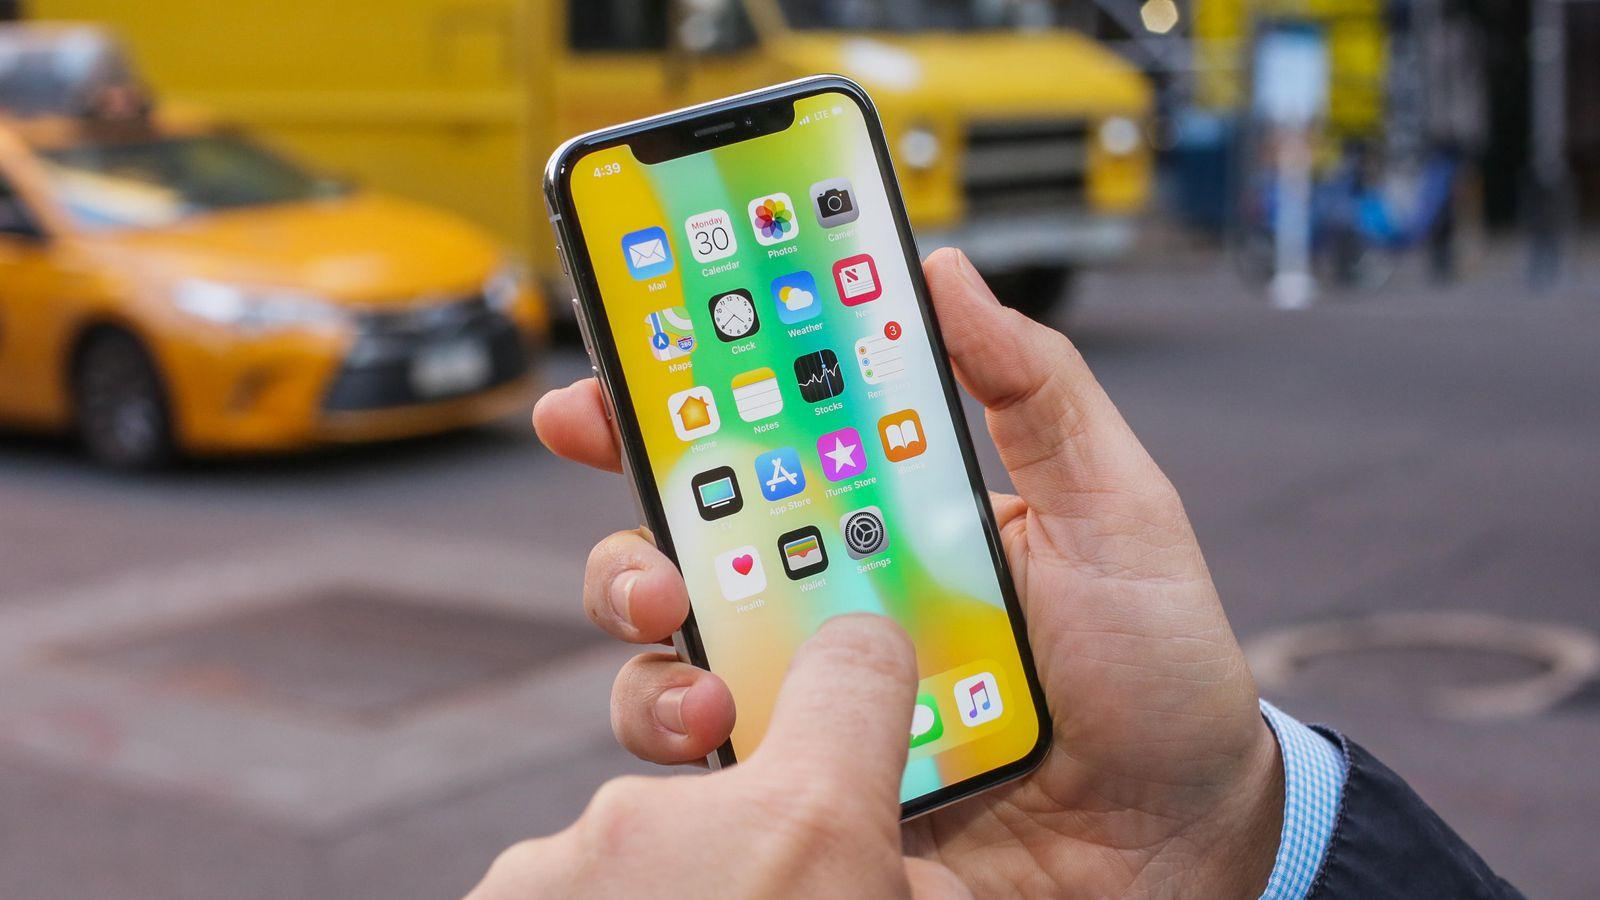 Apple says it's working on a software fix for a bug that makes some iPhone X screens unresponsive in cooler weather.